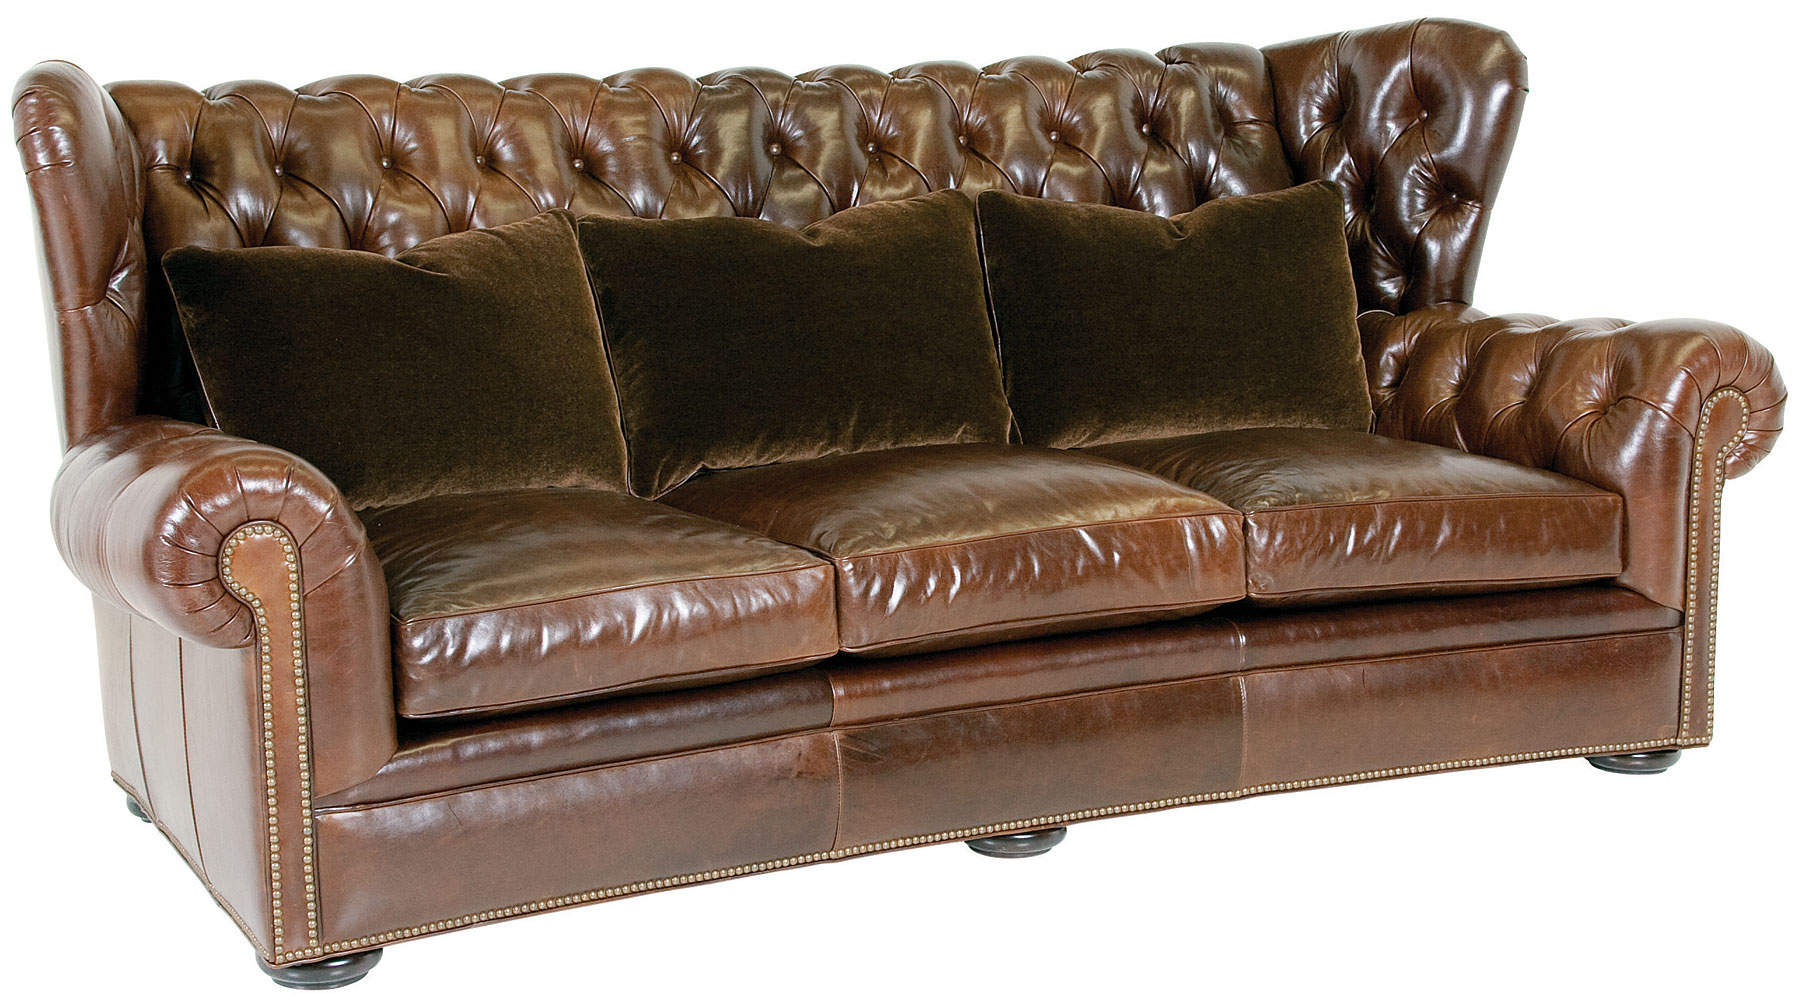 Leather Wingback Chesterfield Sofa With Nailhead Trim  : carmichael designer style leather wingback chesterfield sofa 1 from www.clubfurniture.com size 1798 x 1000 jpeg 346kB